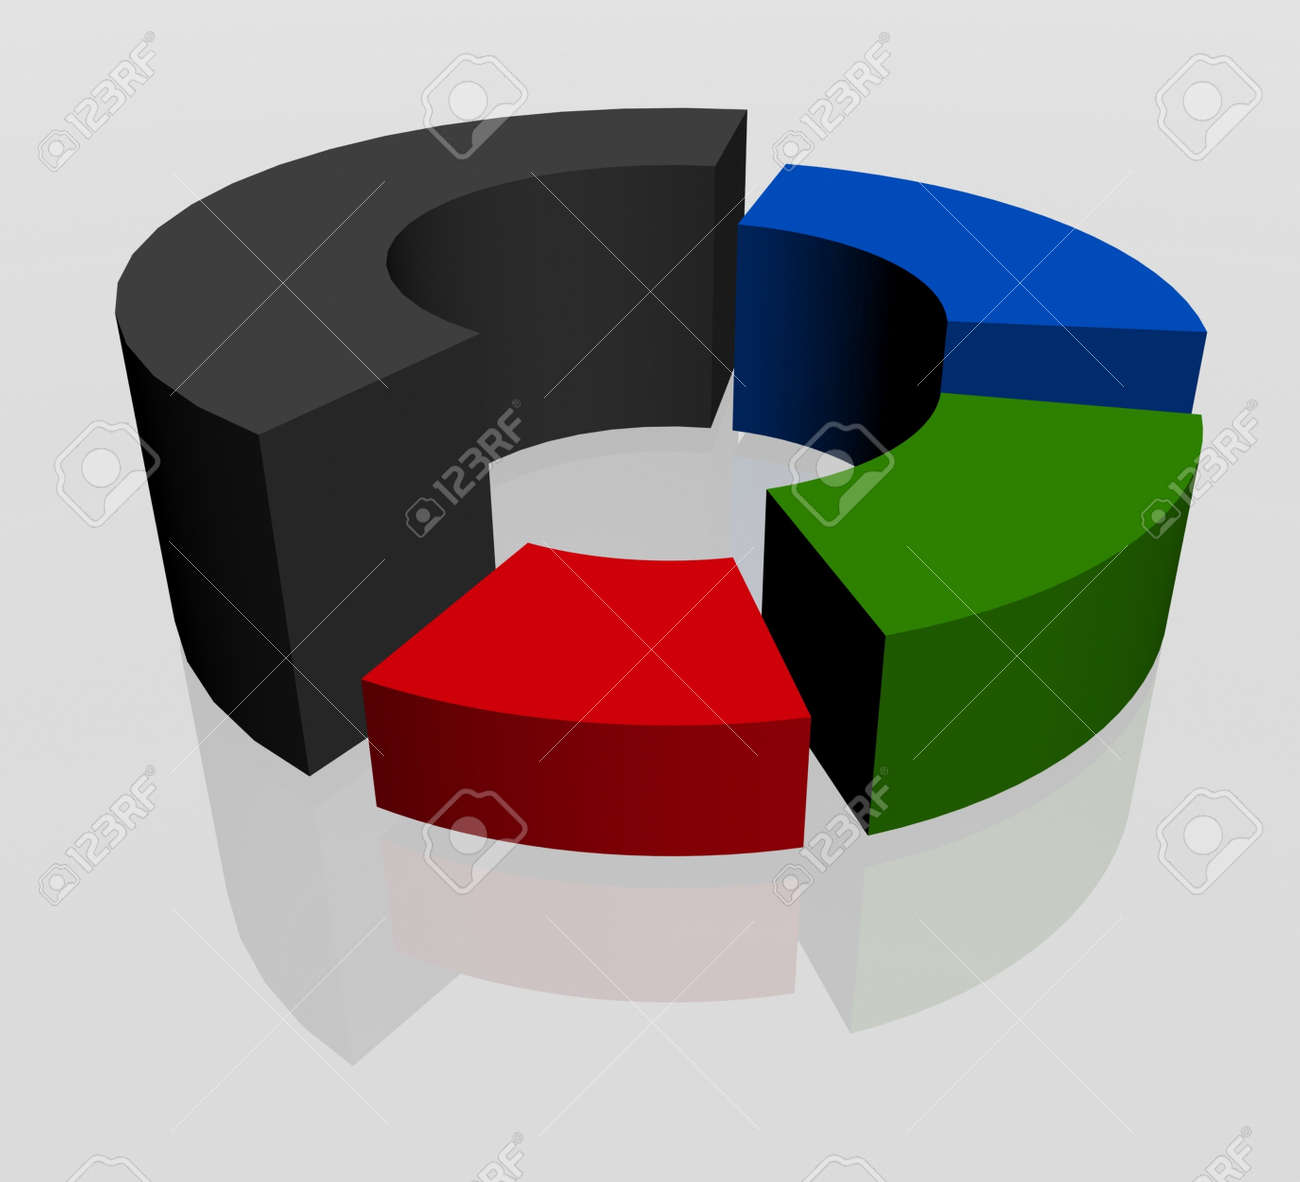 hight resolution of 3d circular diagram on white background stock photo 12050666